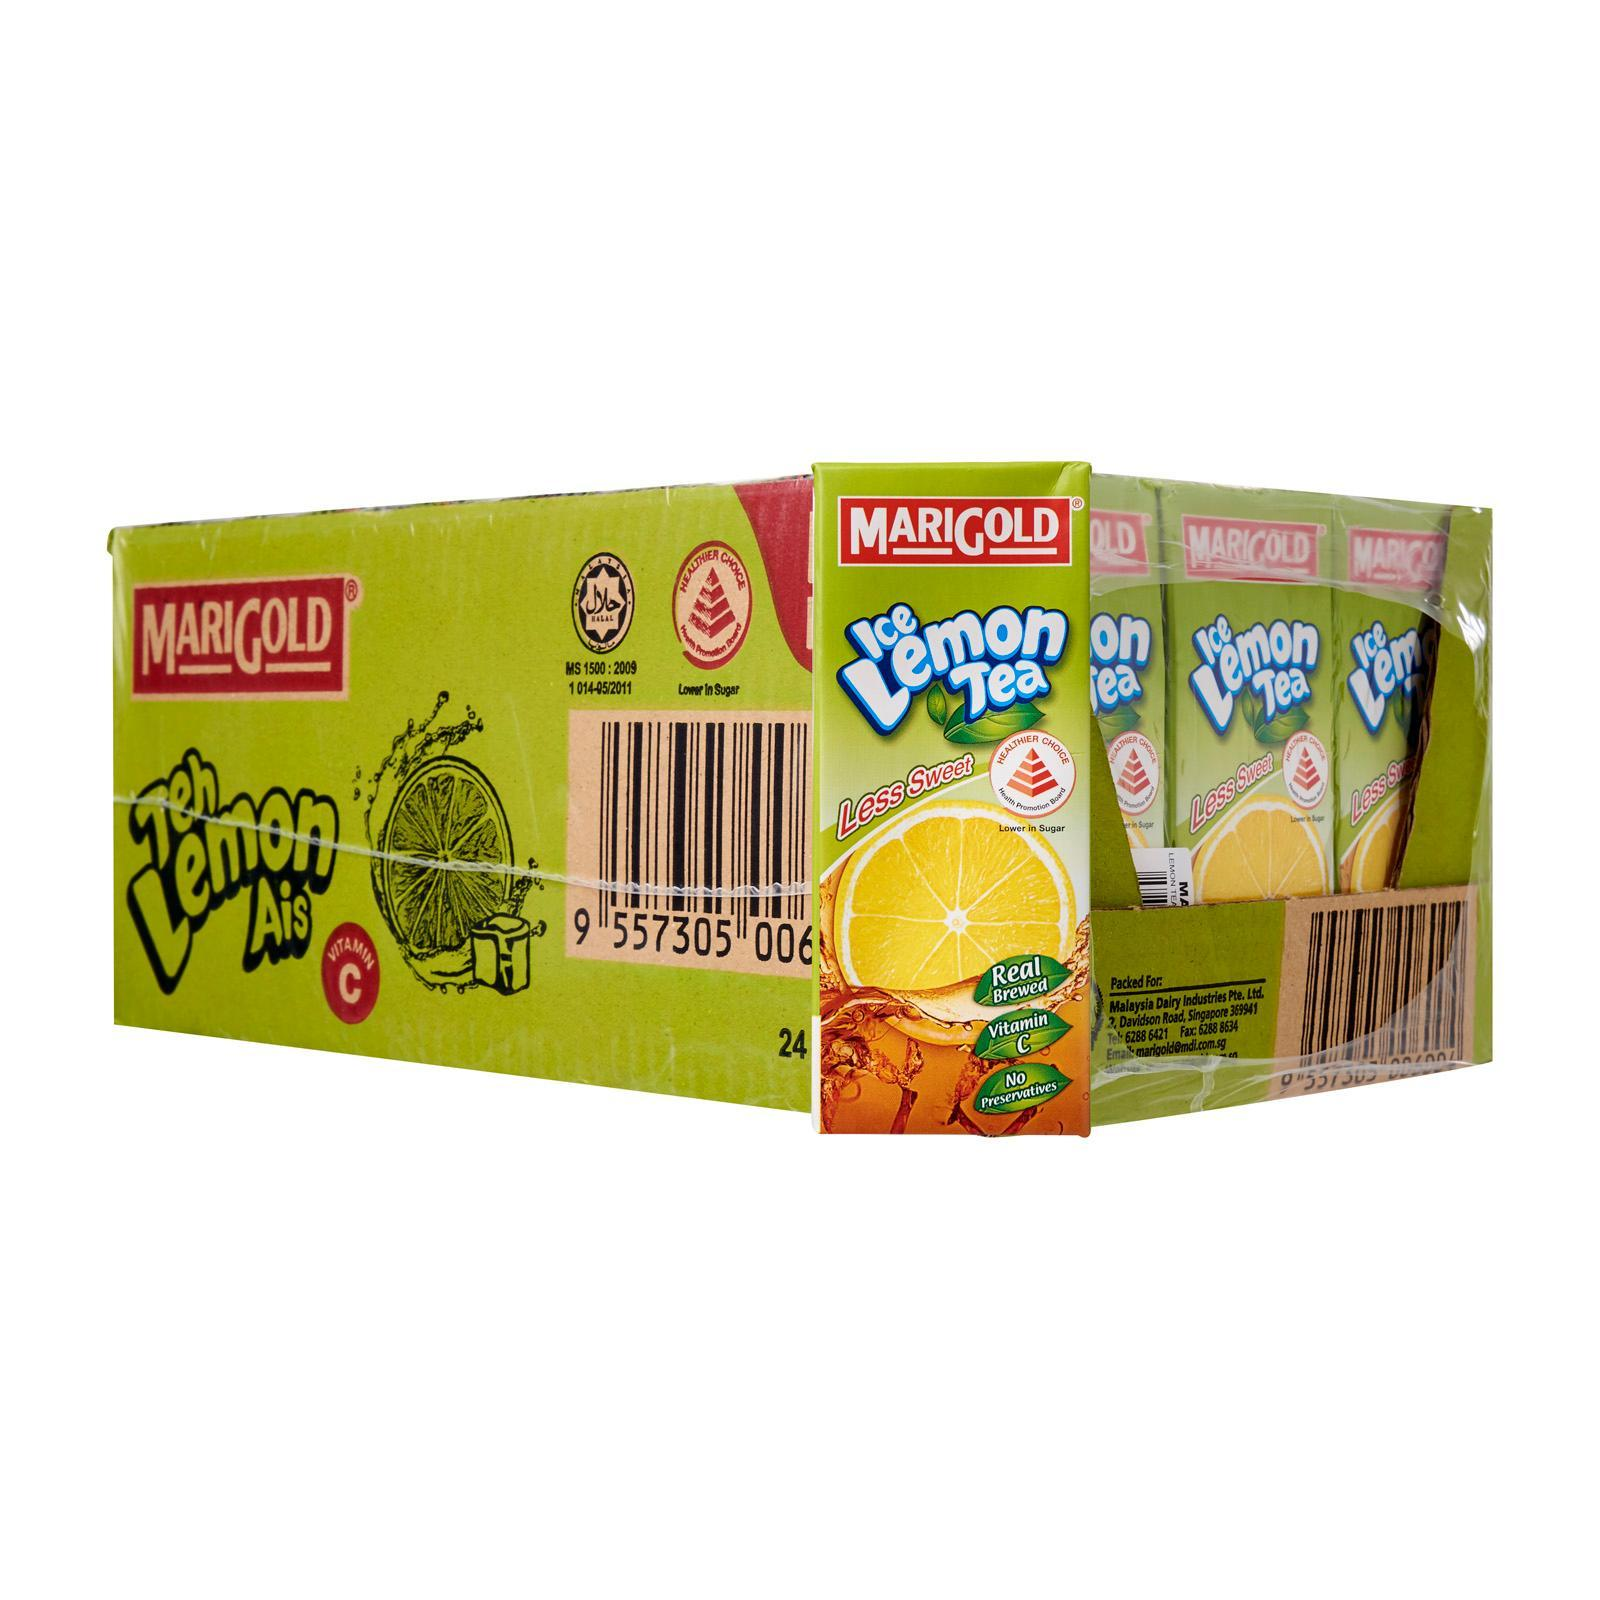 MARIGOLD Less Sweet Ice Lemon Tea Packet Drink - Case